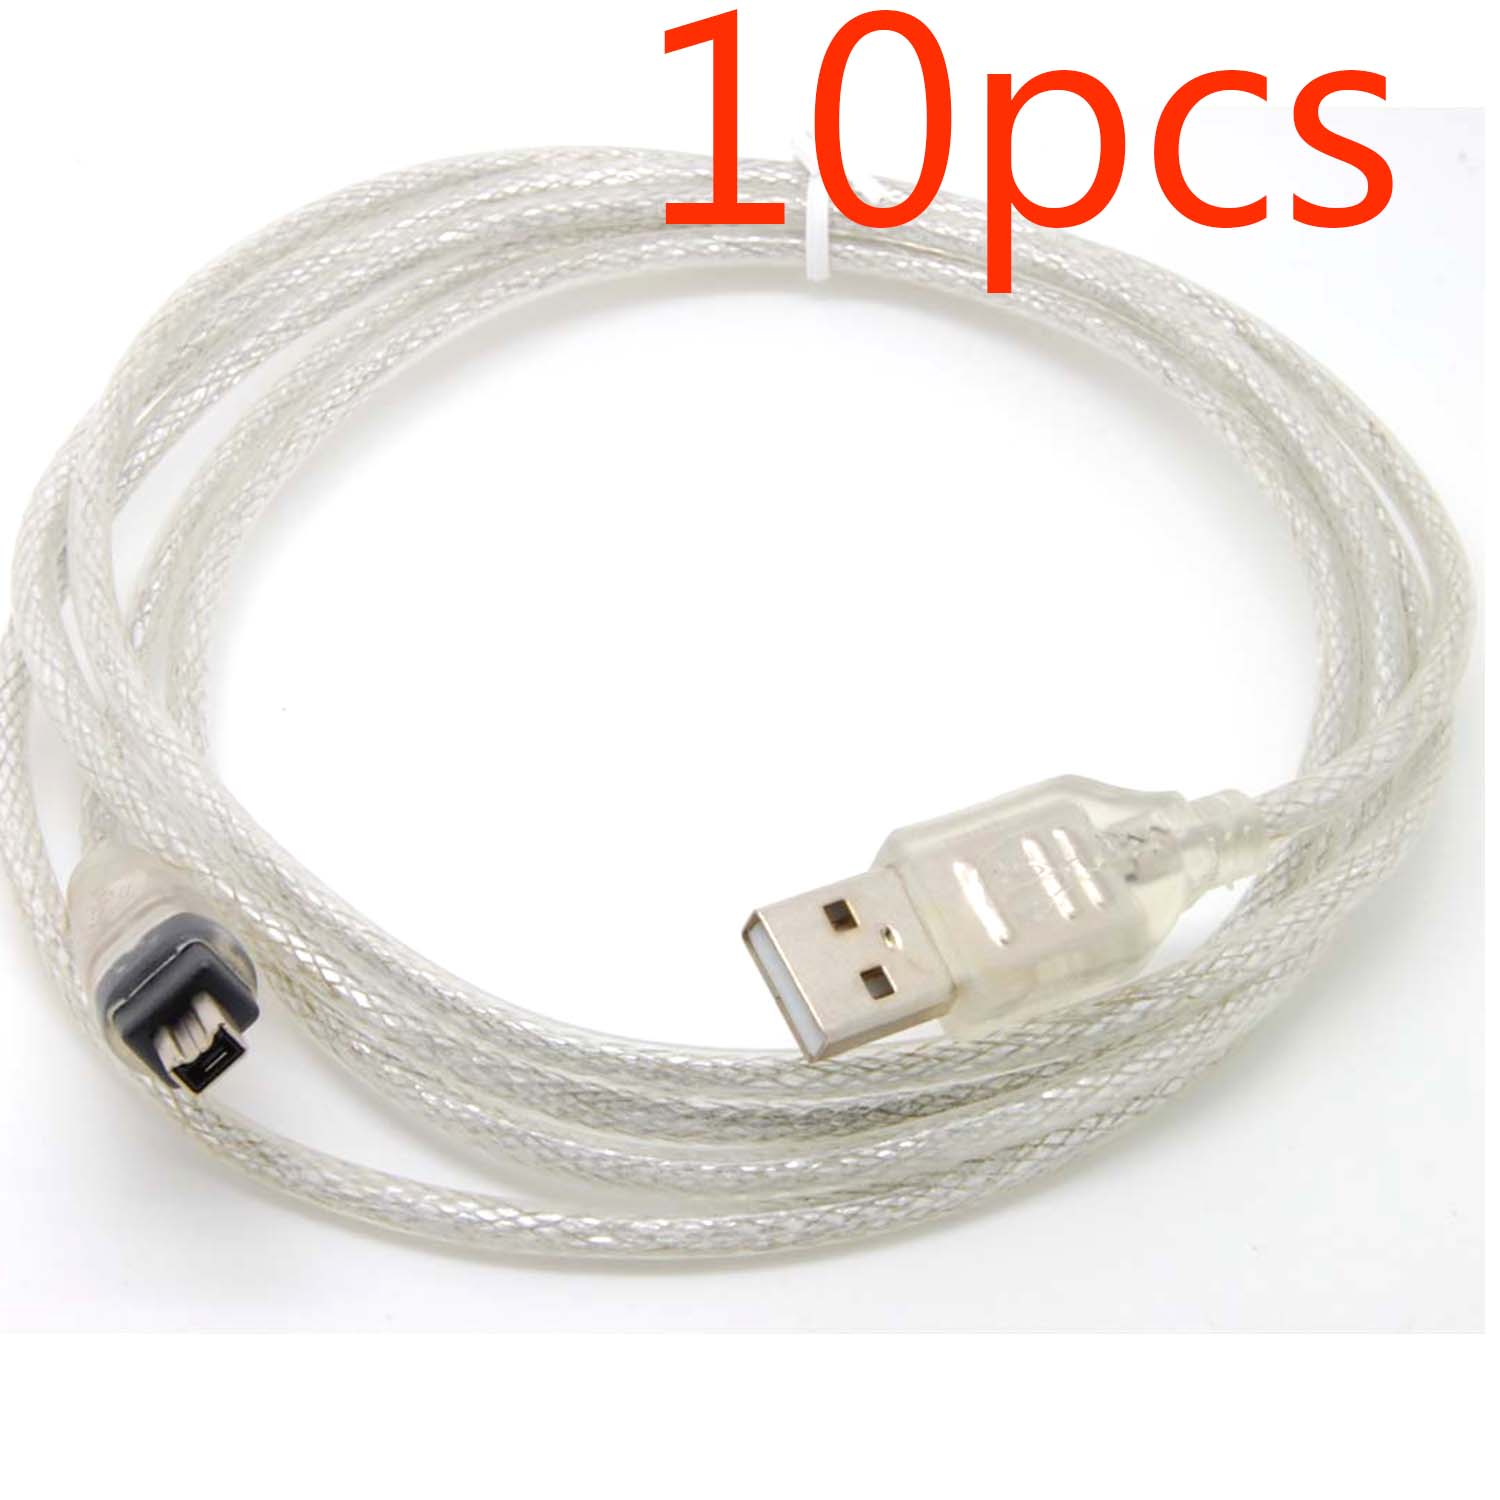 10pcs USB Data cable 4pin Firewire IEEE 1394 for MINI DV HDV camcorder edit pc